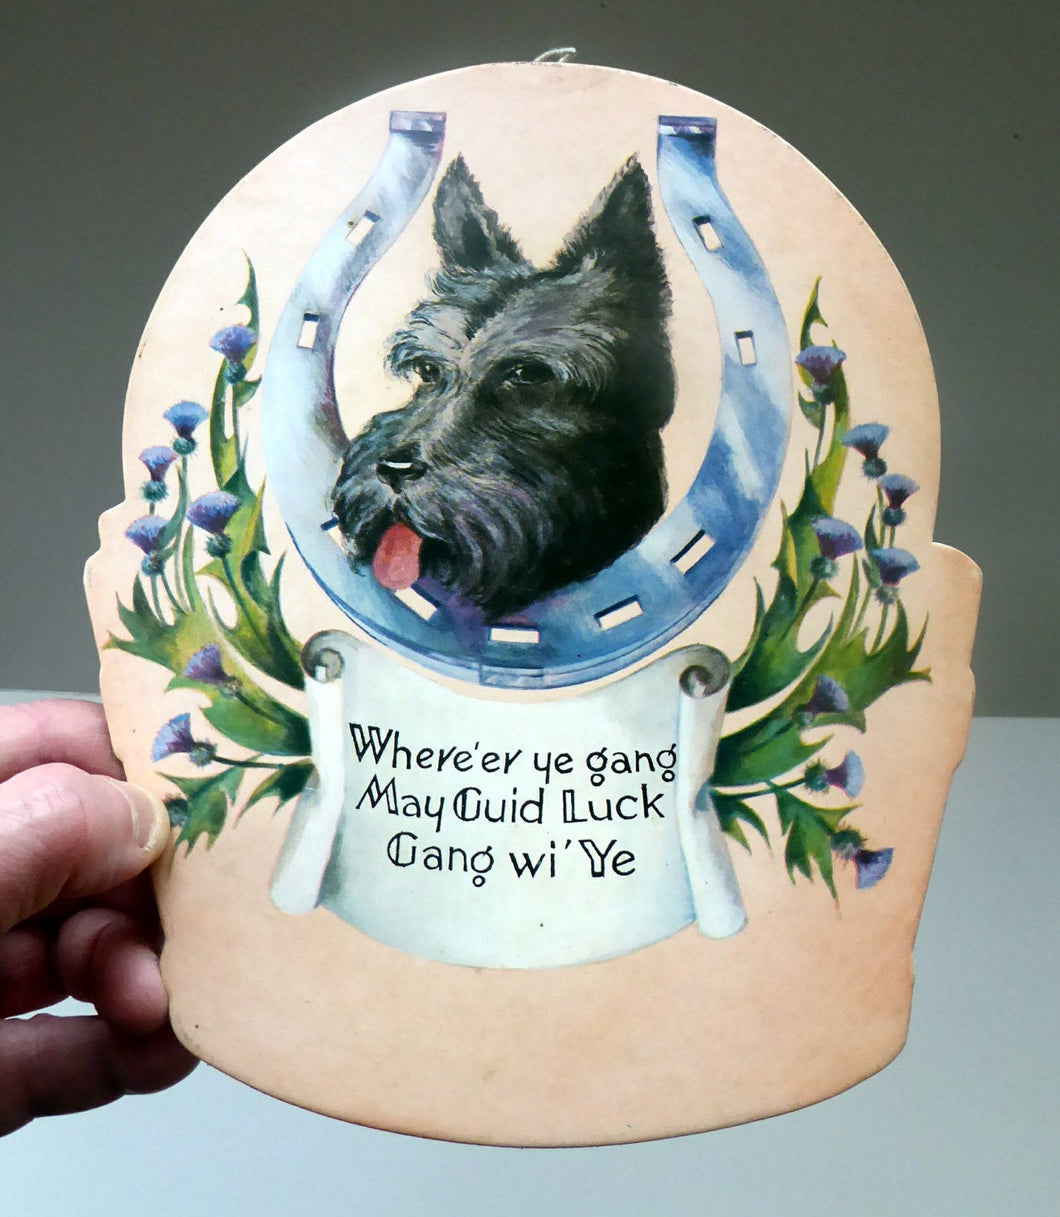 Genuine 1950s Scottish Cardboard Wall Calendar: Featuring a Scottie Dog, with his Head Through a Lucky Horse Shoe